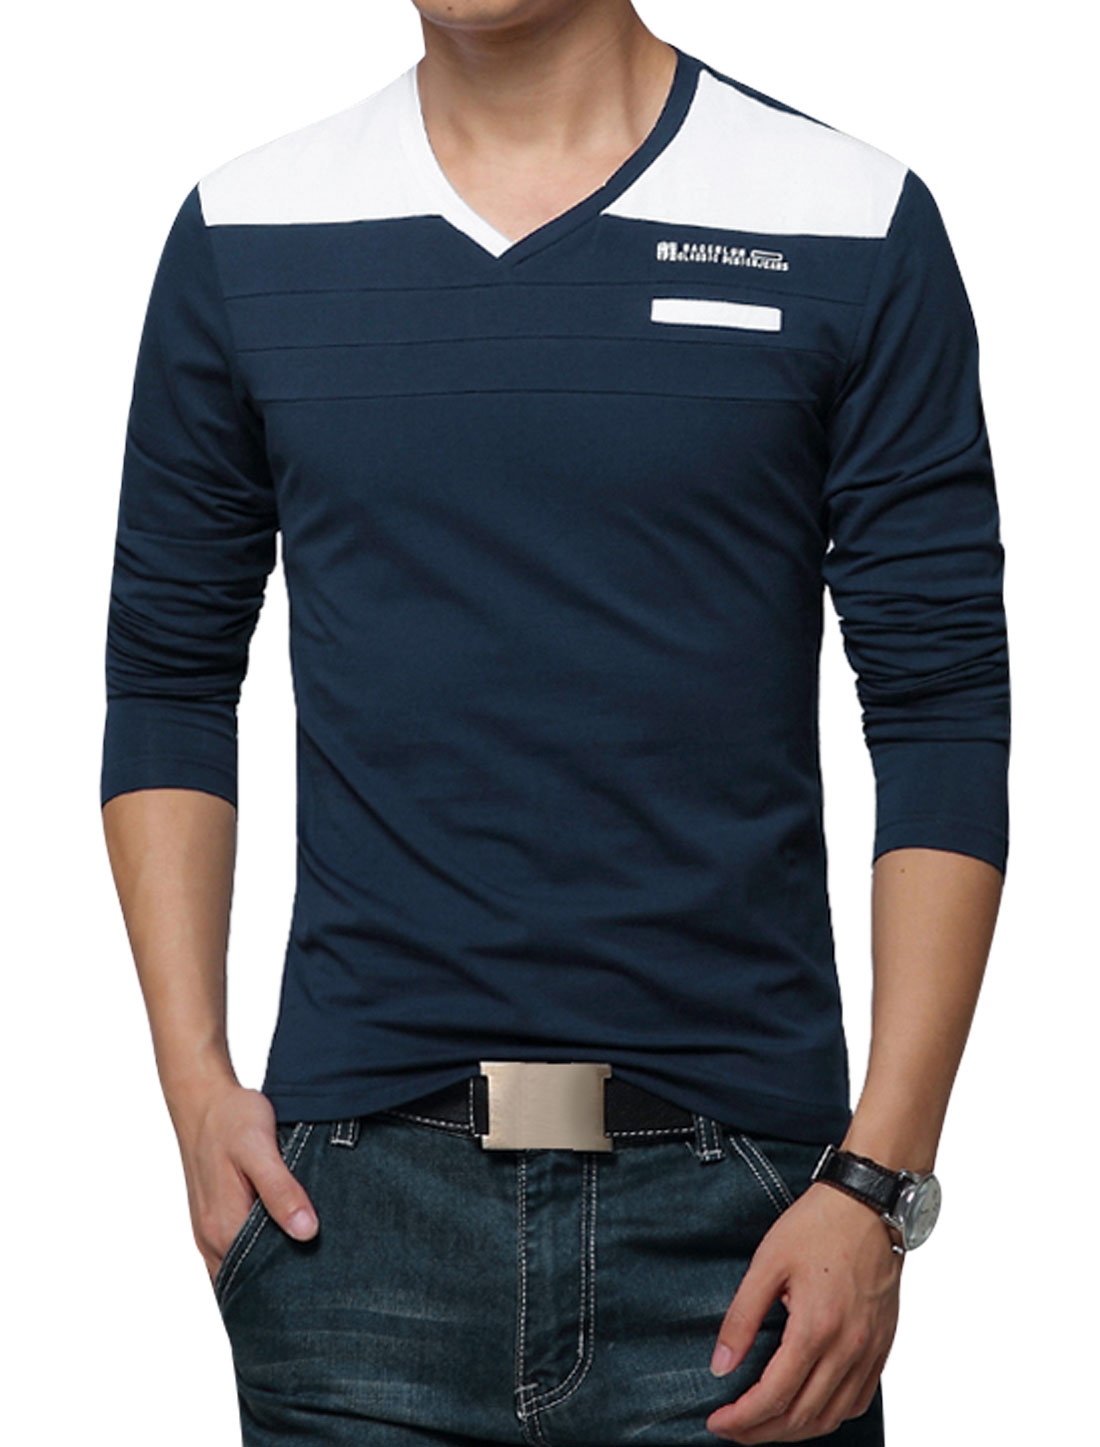 Men V Neckline Long Sleeves Contrast Color T-Shirts Navy Blue M